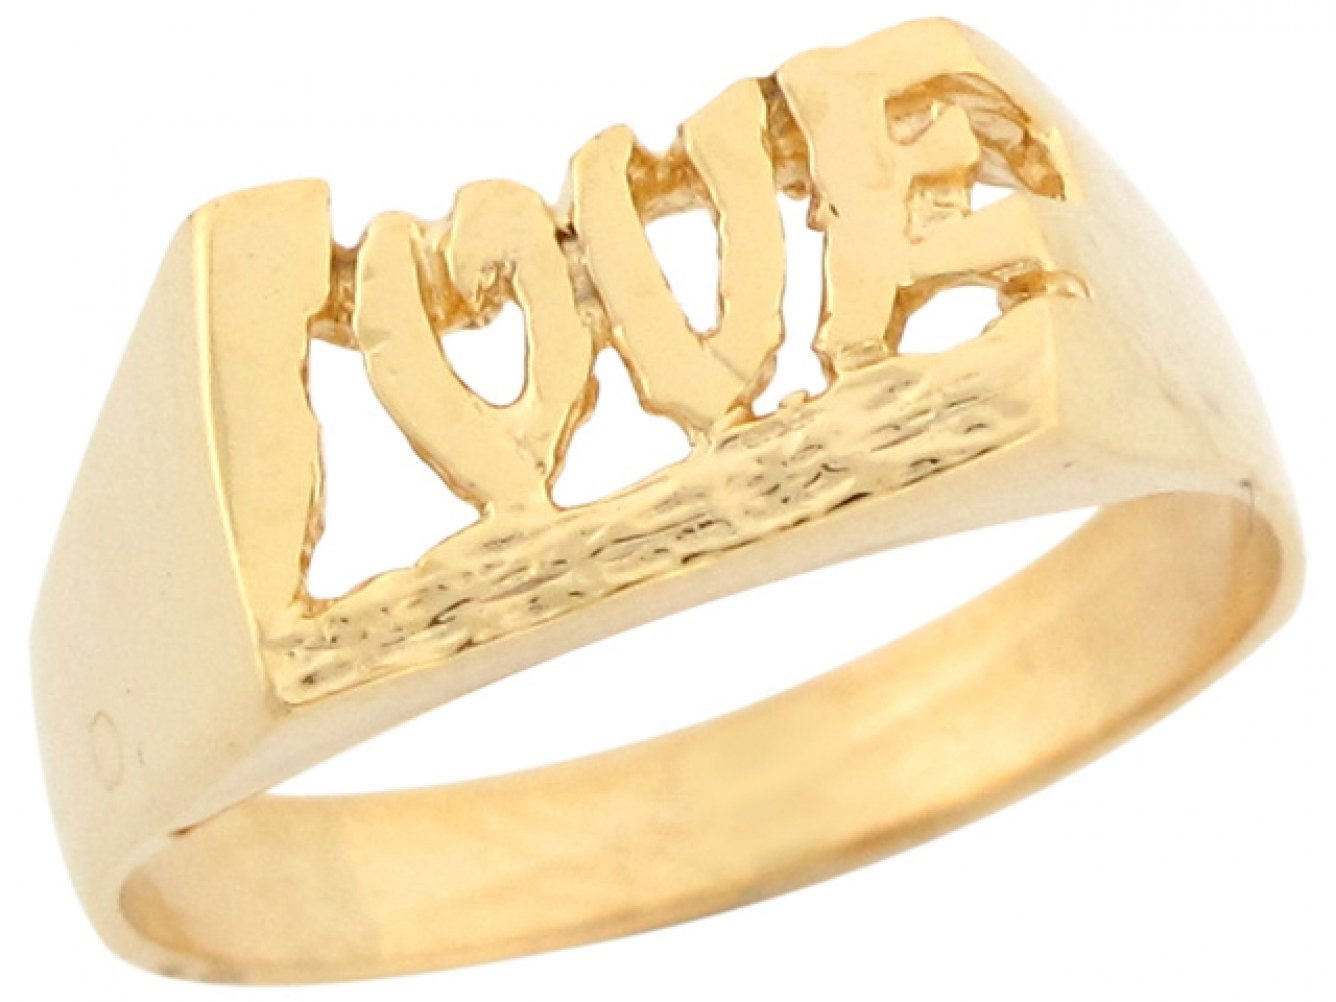 10k Real Yellow Gold Love Designer Mens Pinky Ring by Jewelry Liquidation (Image #2)